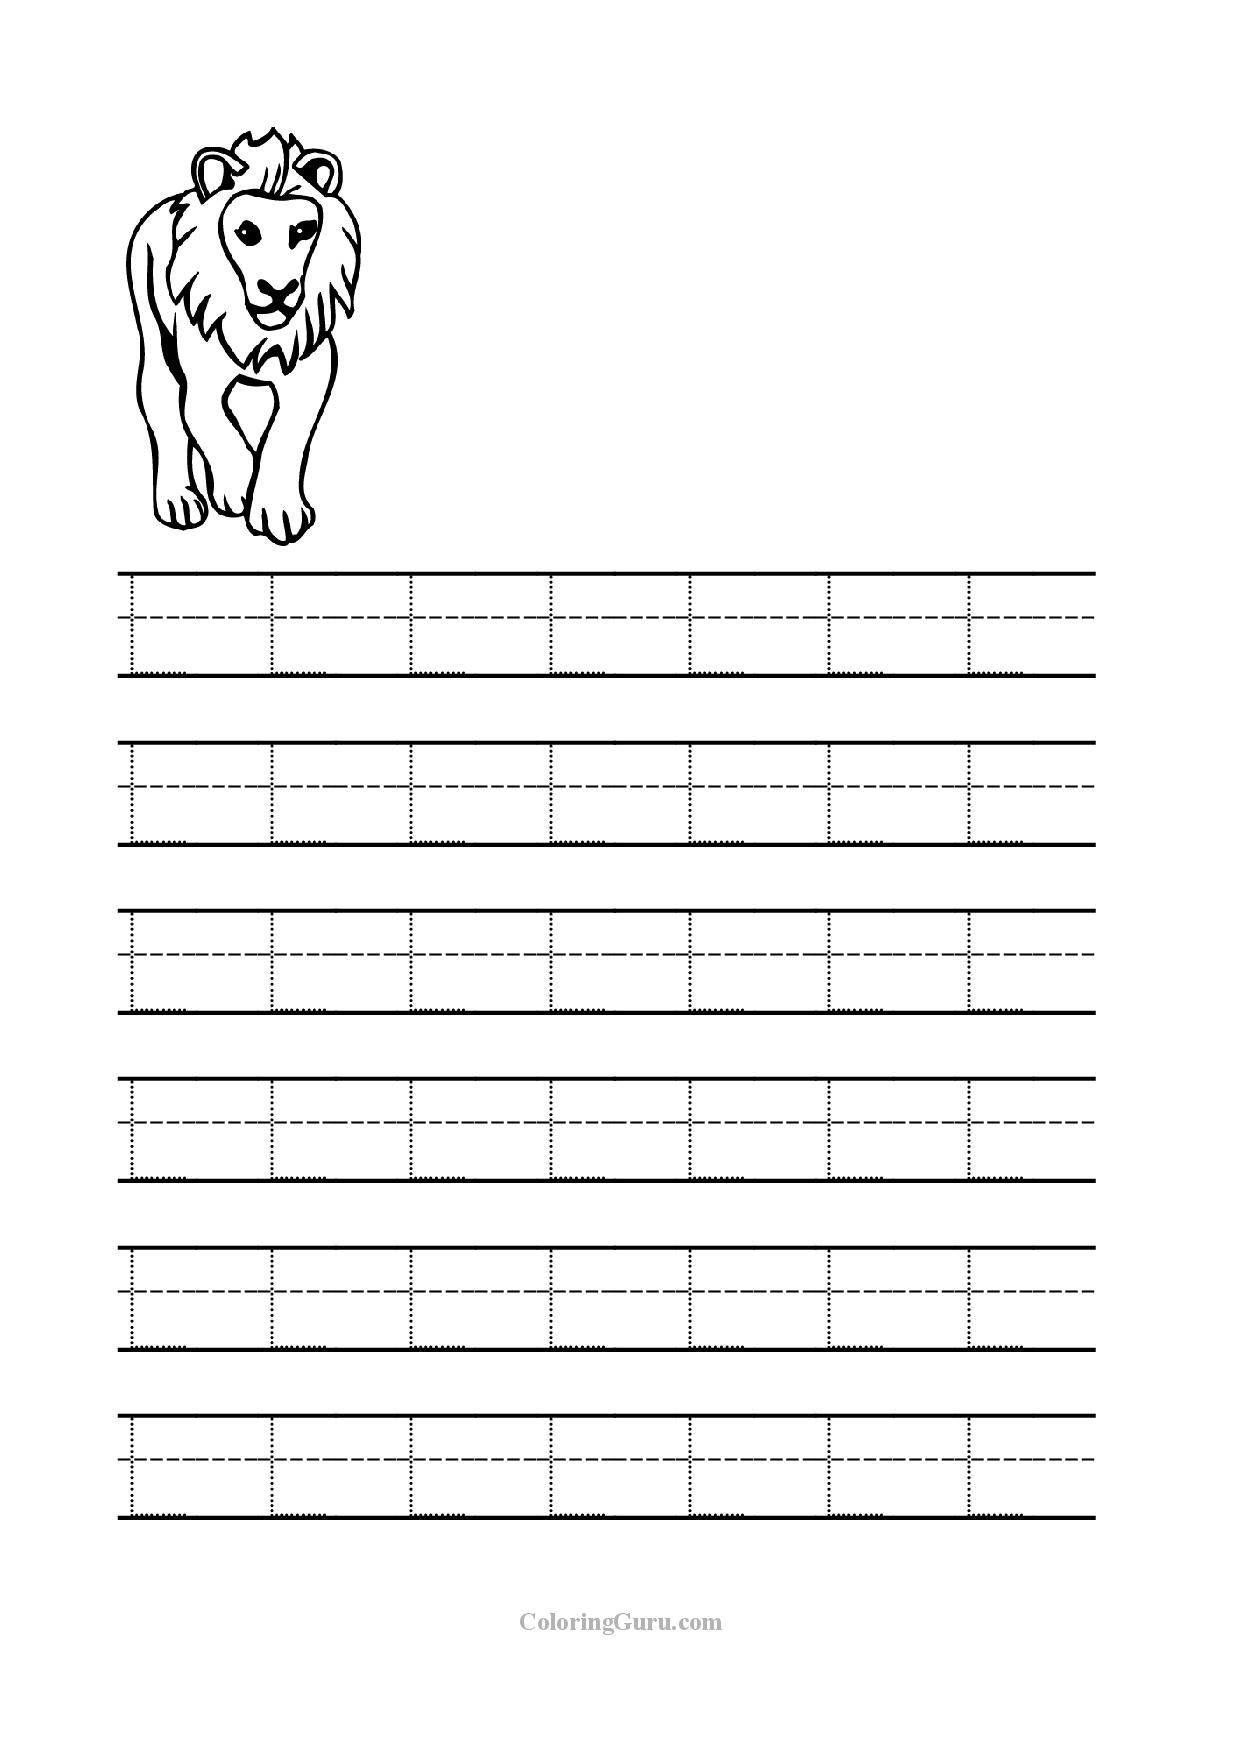 Free Worksheet Letter L Worksheets For Preschool 17 best images about preschool on pinterest activities lion mask and coloring pages